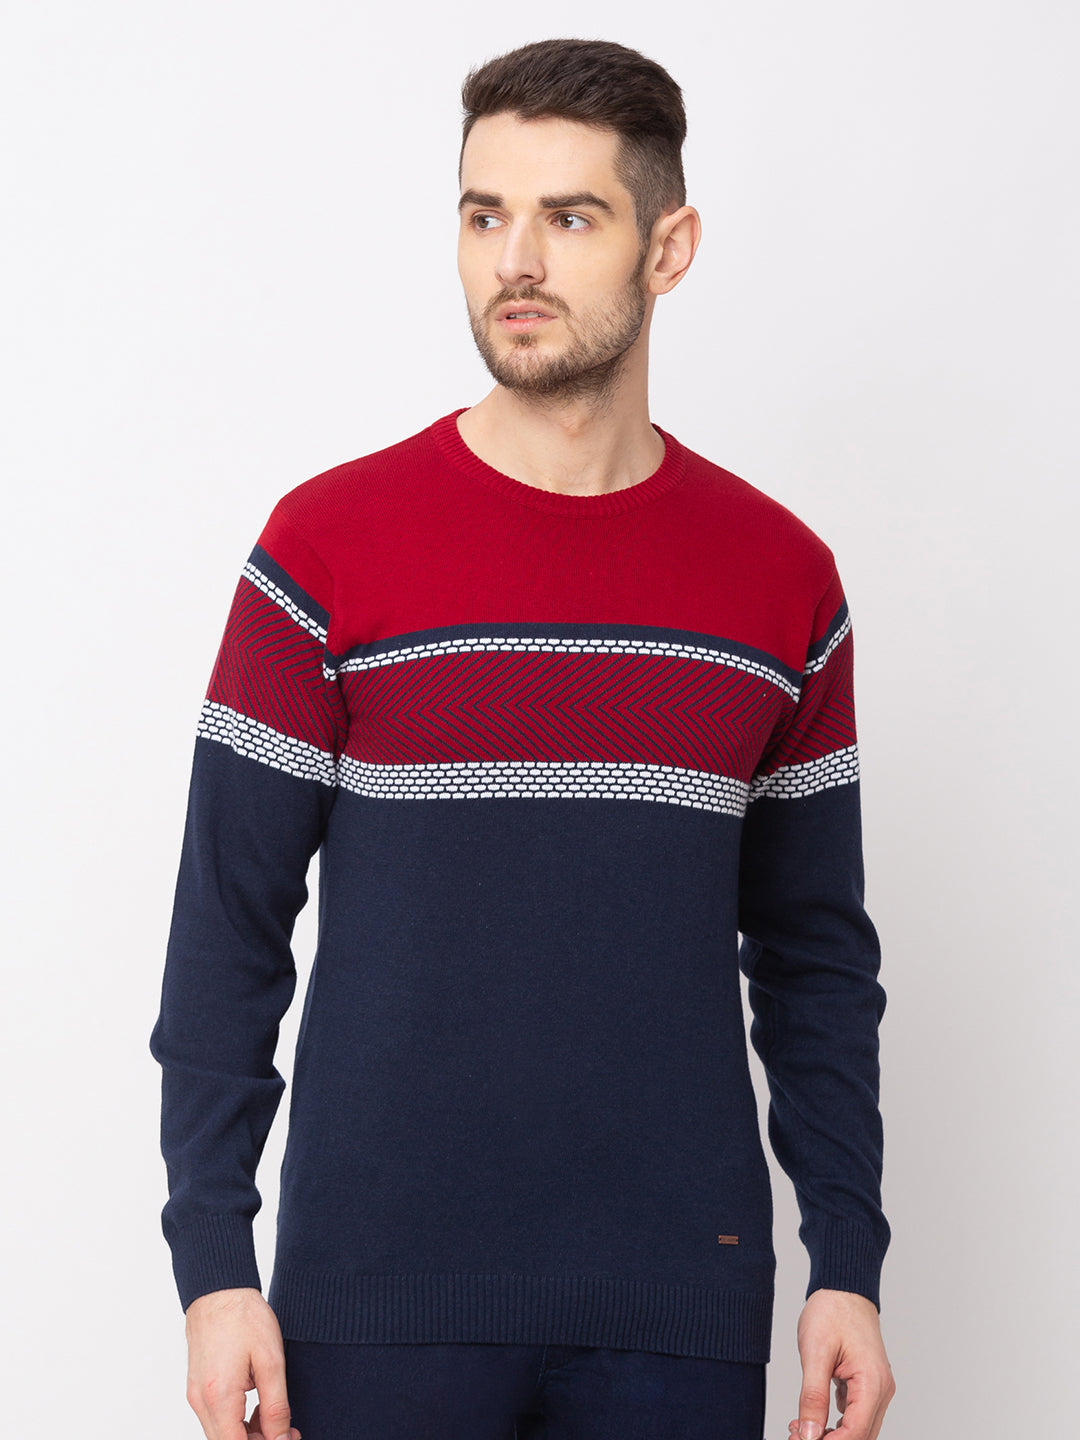 Globus Royal Blue Colourblocked Pullover Sweater-1